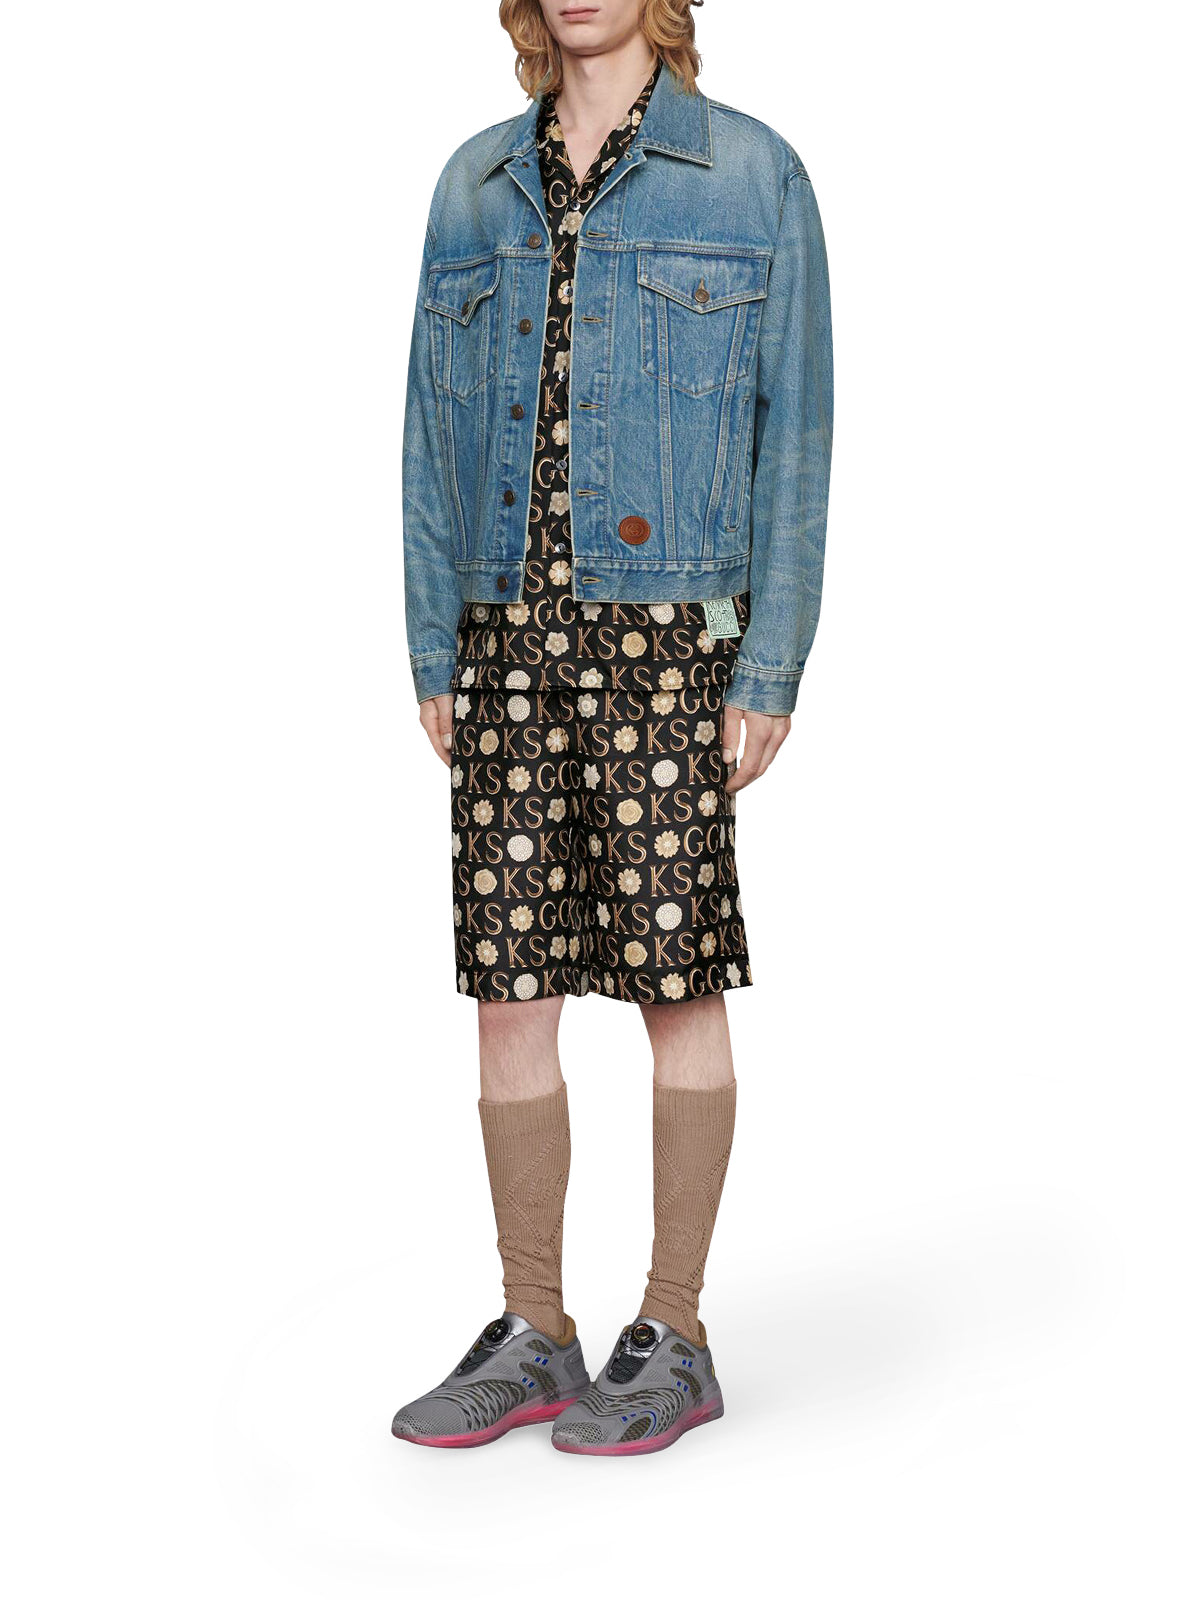 Ken Scott x Gucci print silk shorts